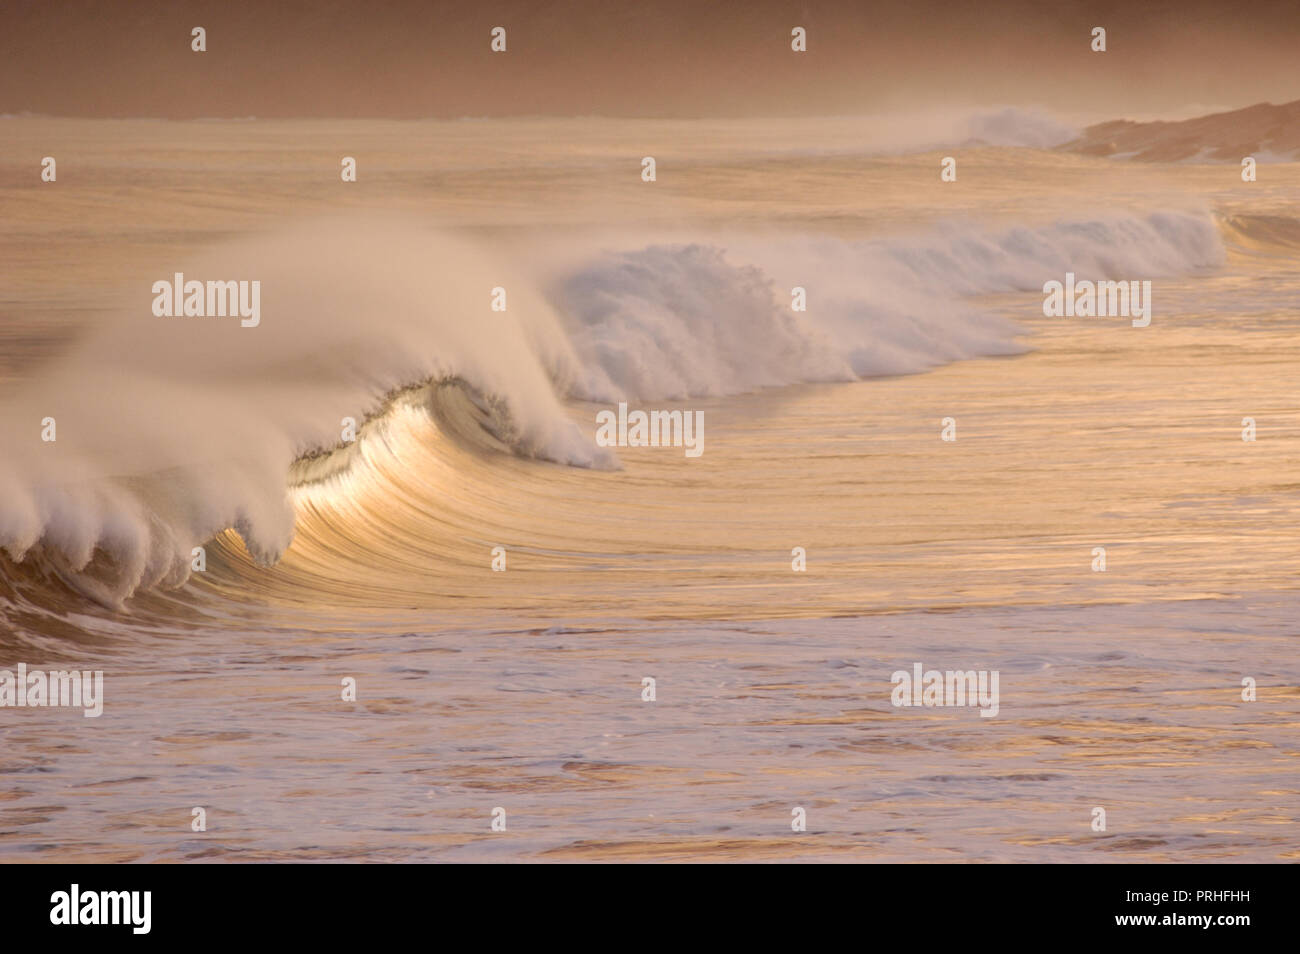 Waves at sunset - Stock Image